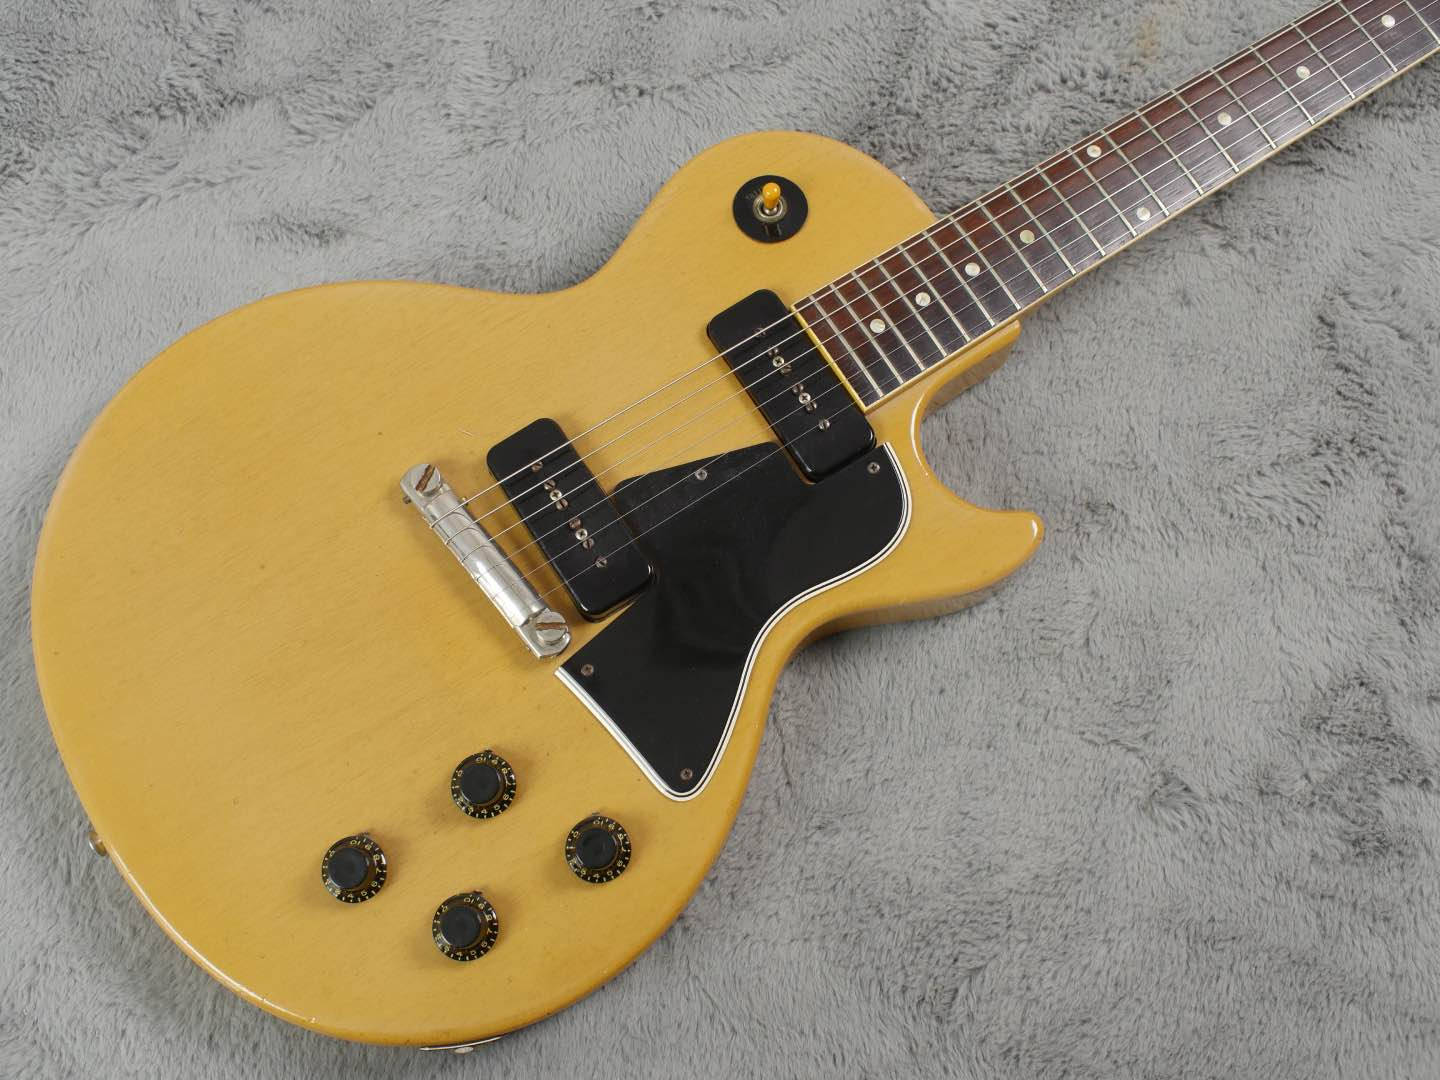 1958 Gibson Les Paul Special TV Yellow + Lifton 5 Latch OHSC